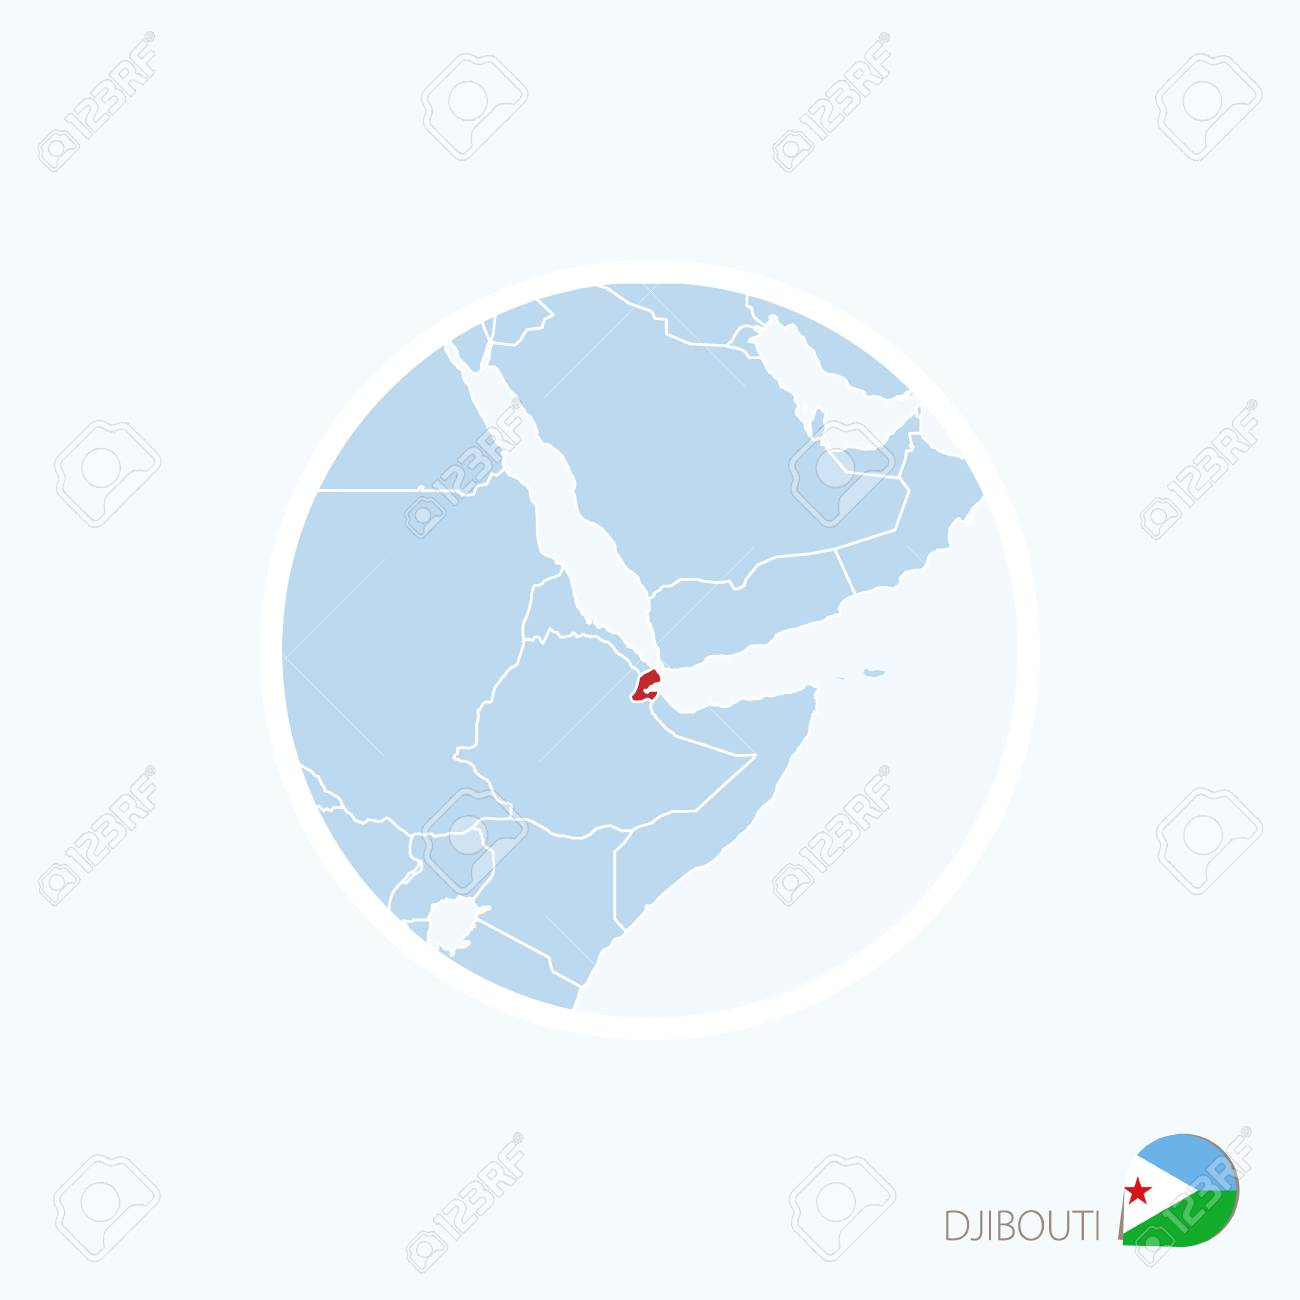 Djibouti On Africa Map.Map Icon Of Djibouti Blue Map Of Africa With Highlighted Djibouti